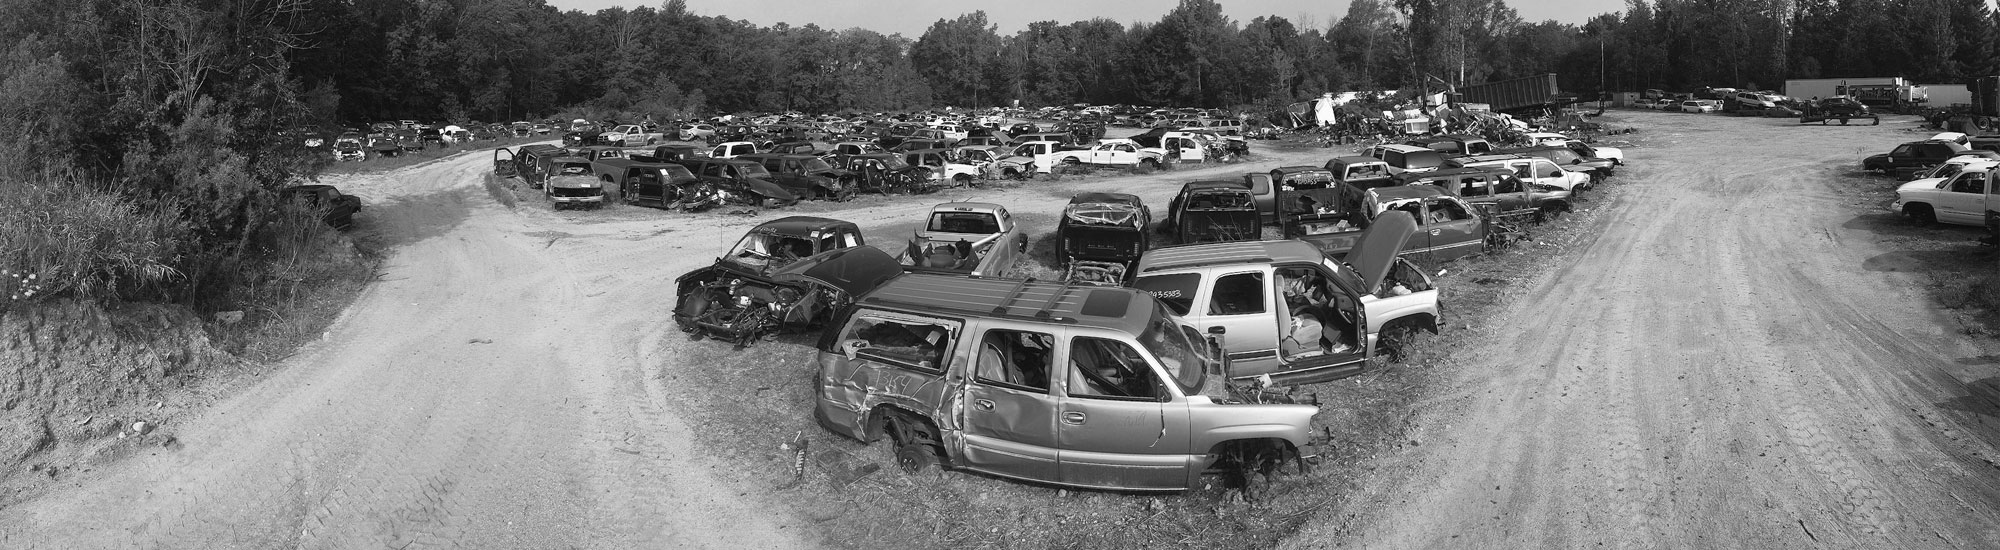 View of the yard at Doug's Auto Recyclers in Coldwater, MI